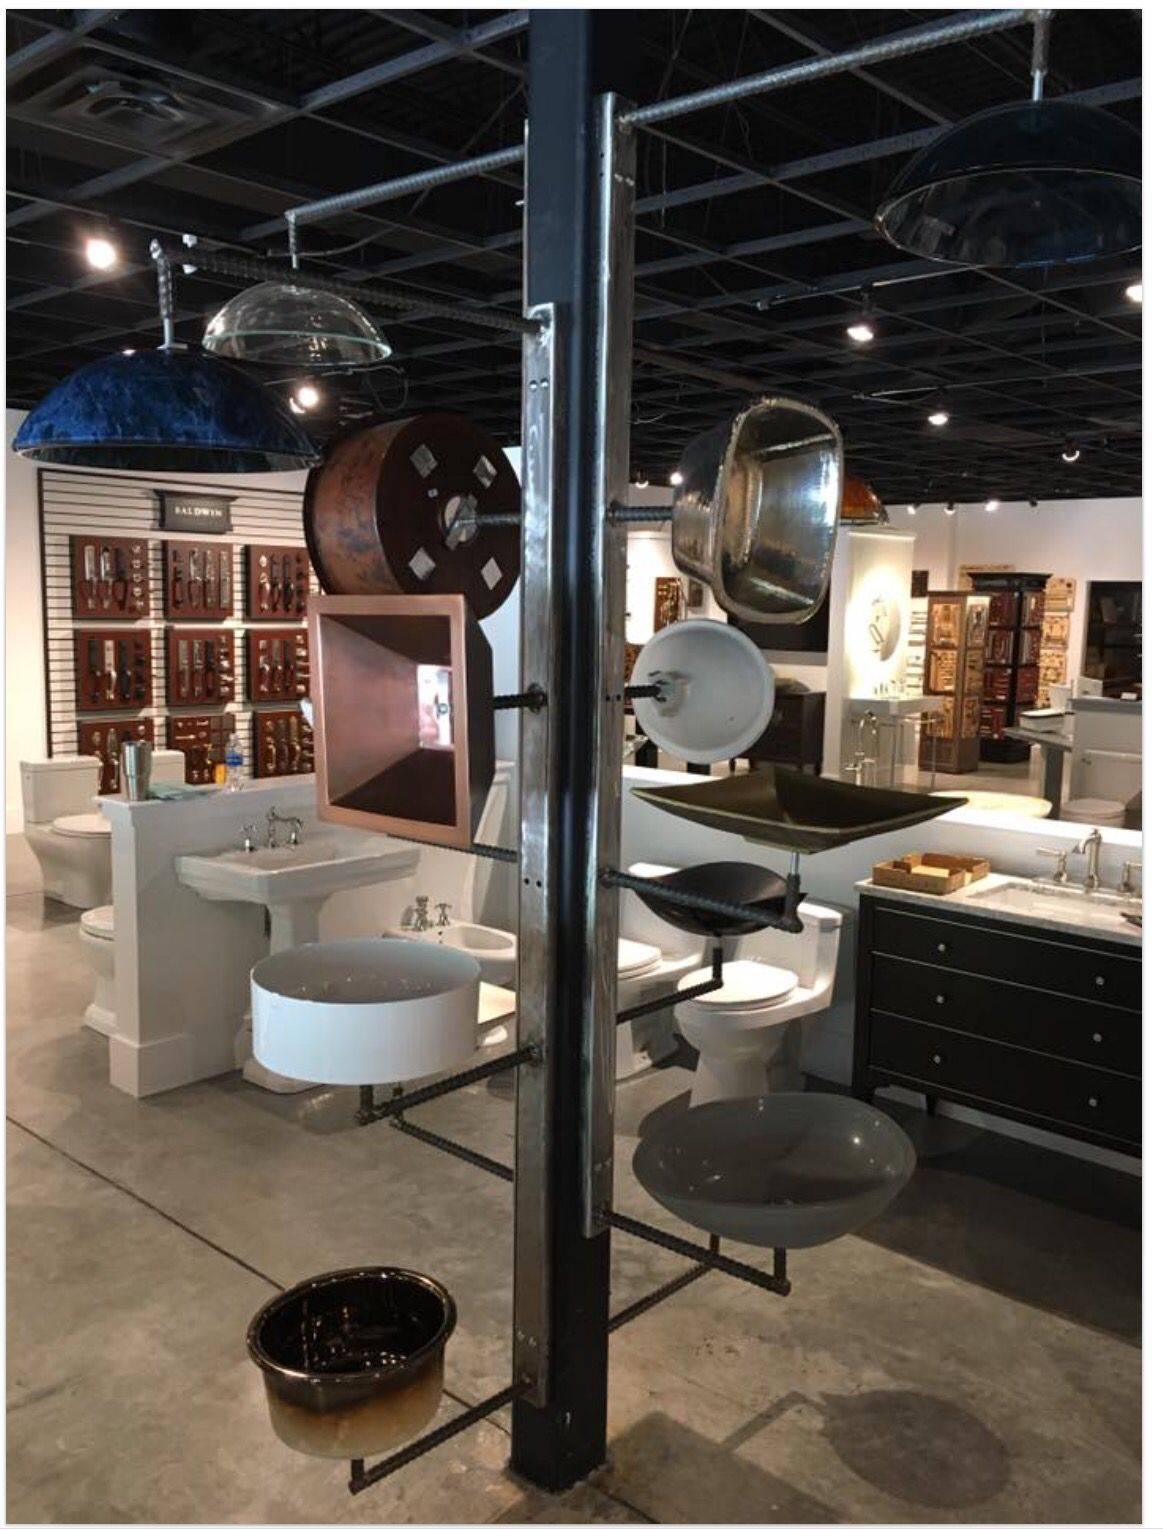 R jacobs fine hardware plumbing showroom hanging sink display r jacobs fine hardware plumbing showroom hanging sink display sisterspd